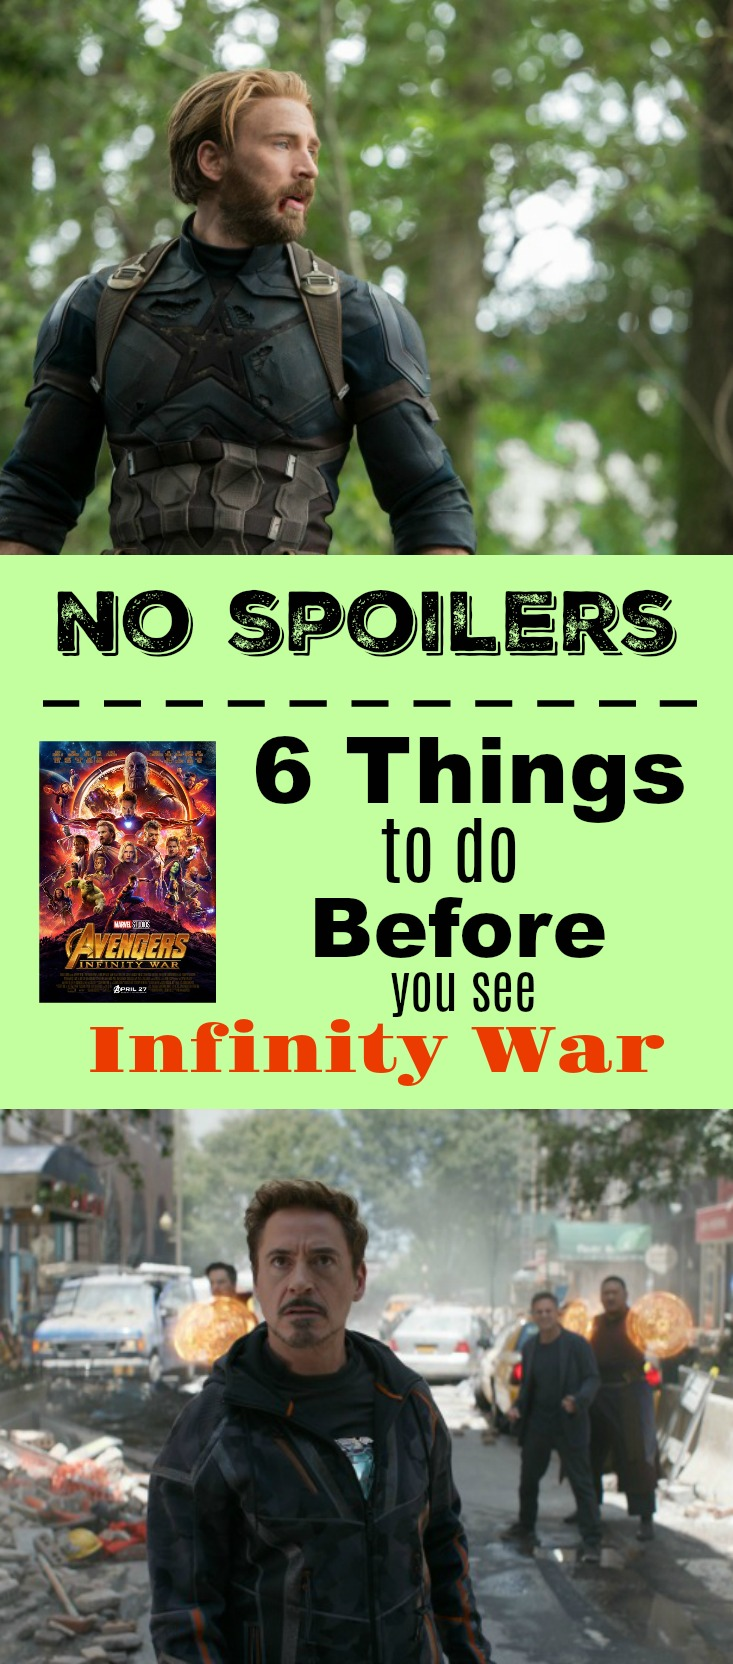 6 things to do before you see Avengers Infinity War